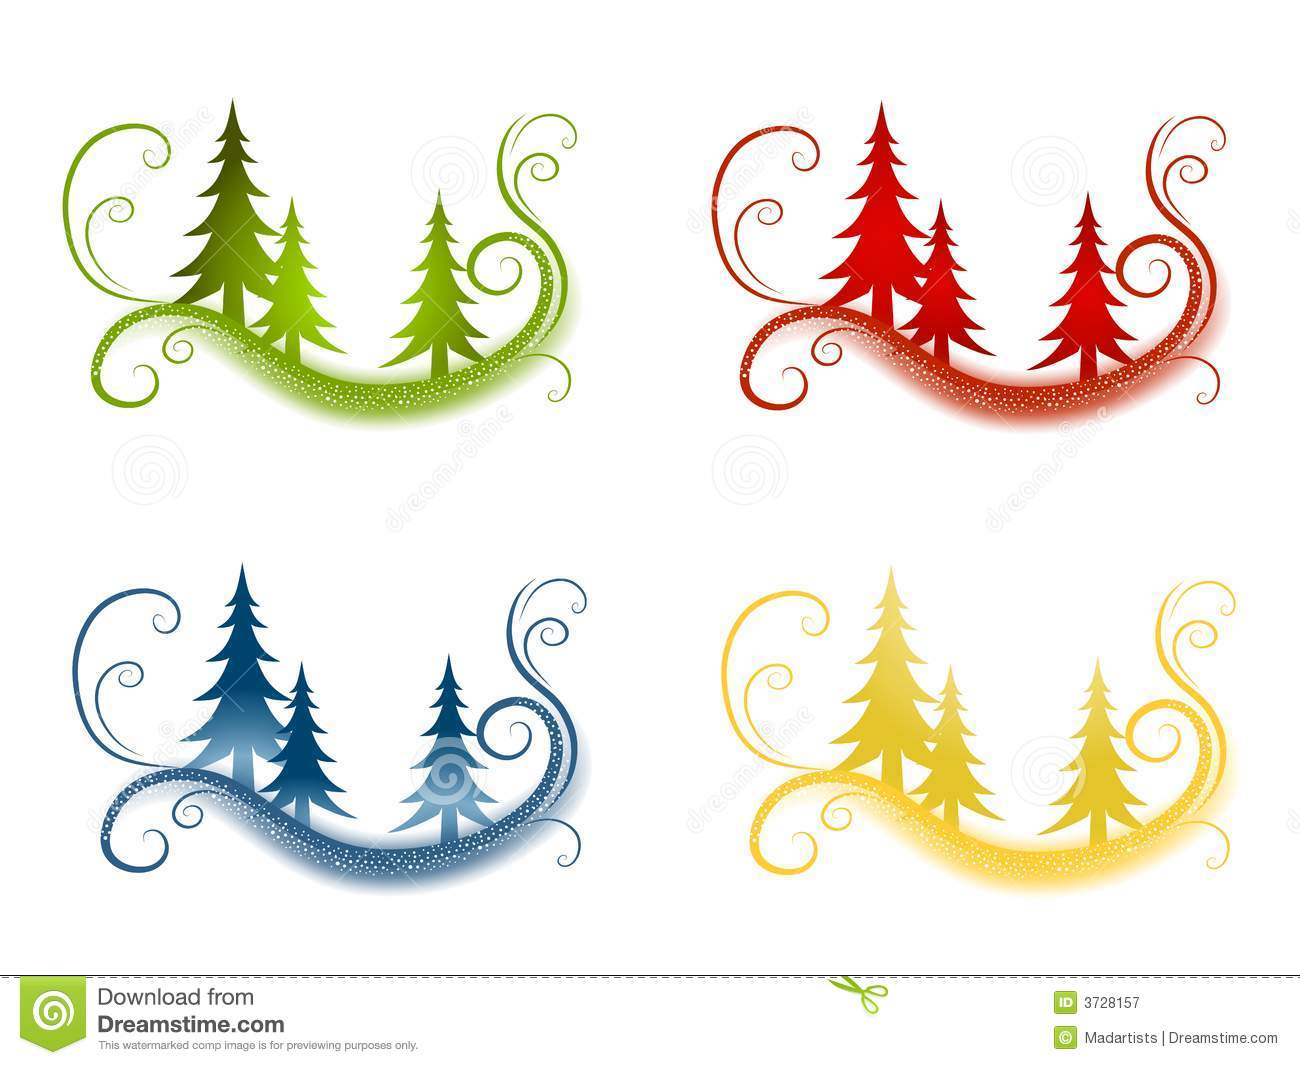 clip art illustration featuring 4 backgrounds of swirling wispy ...